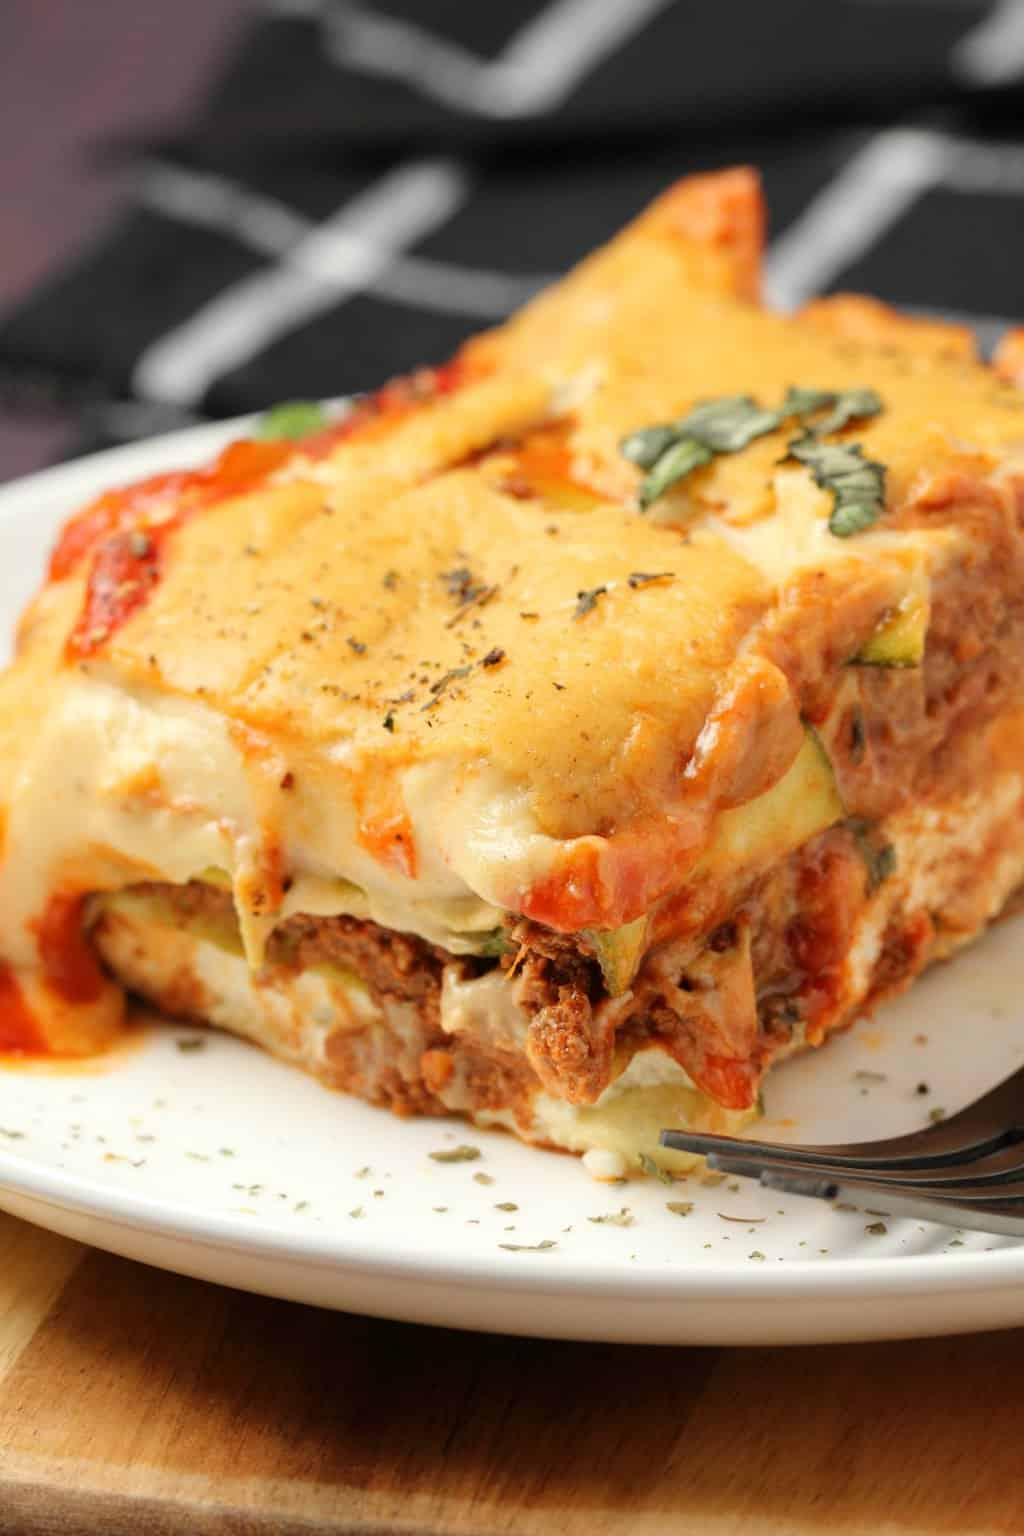 A slice of vegan lasagna on a white plate with a fork.